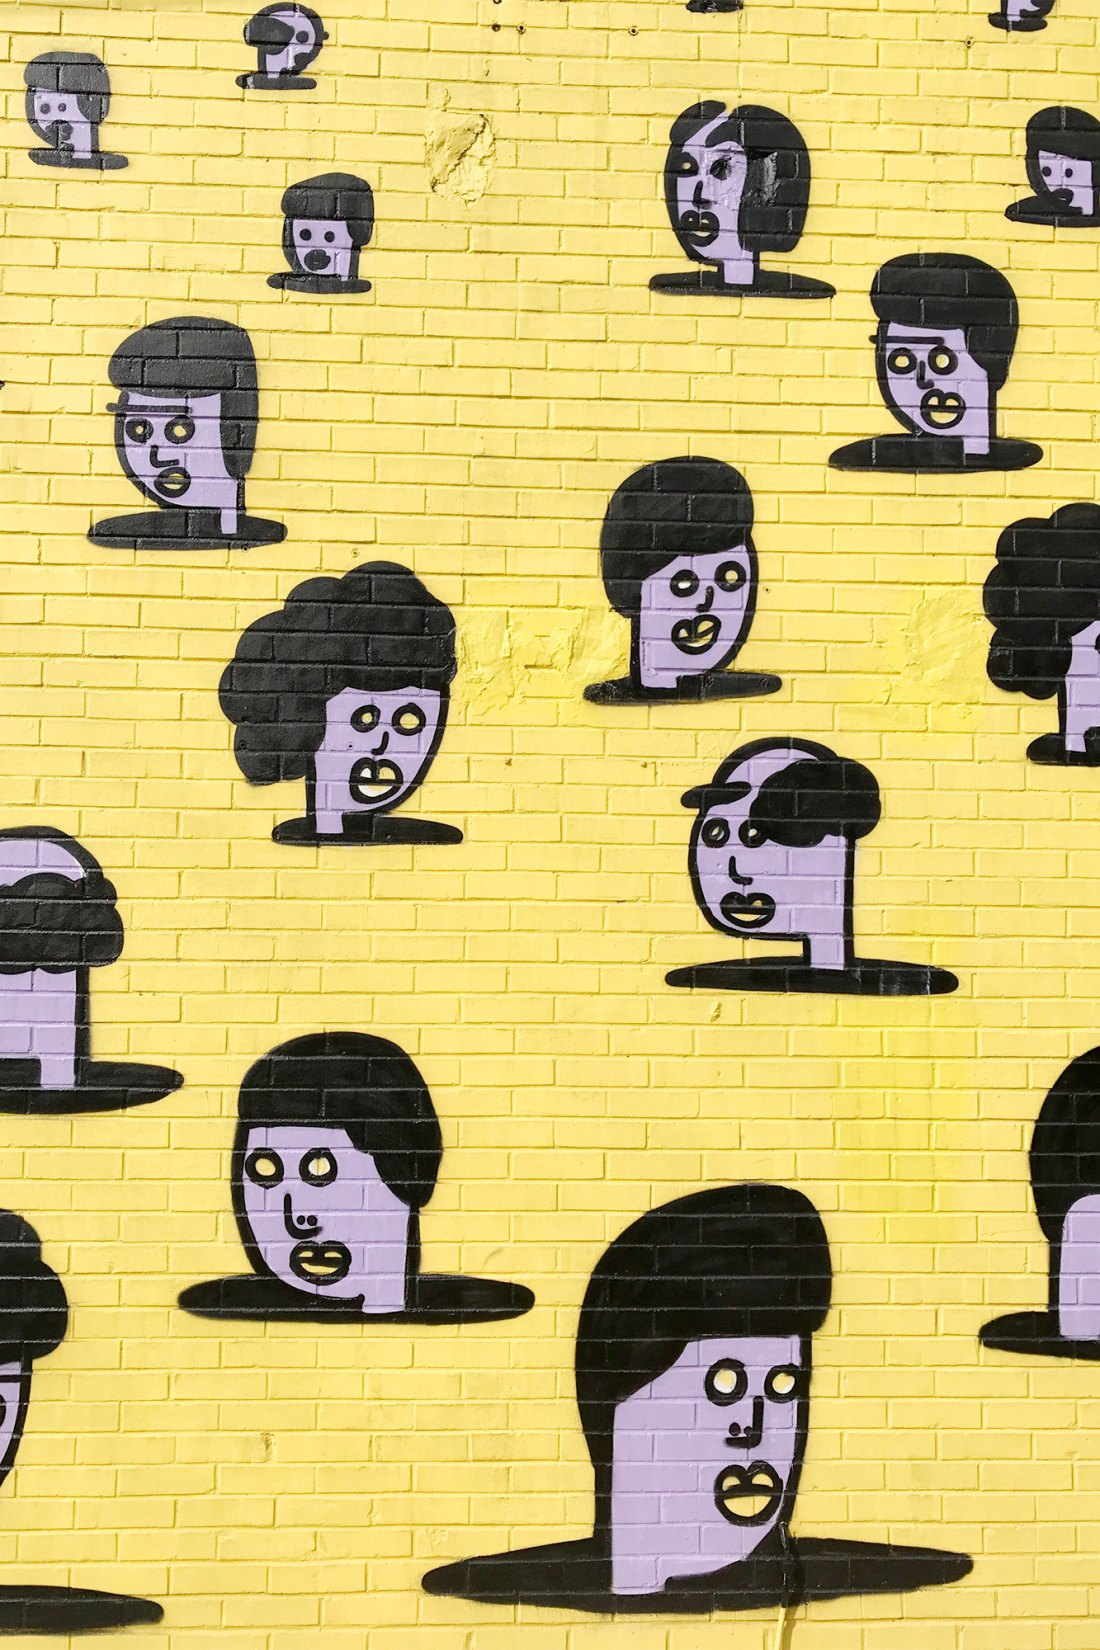 Mural of faces painted on bright yellow wall